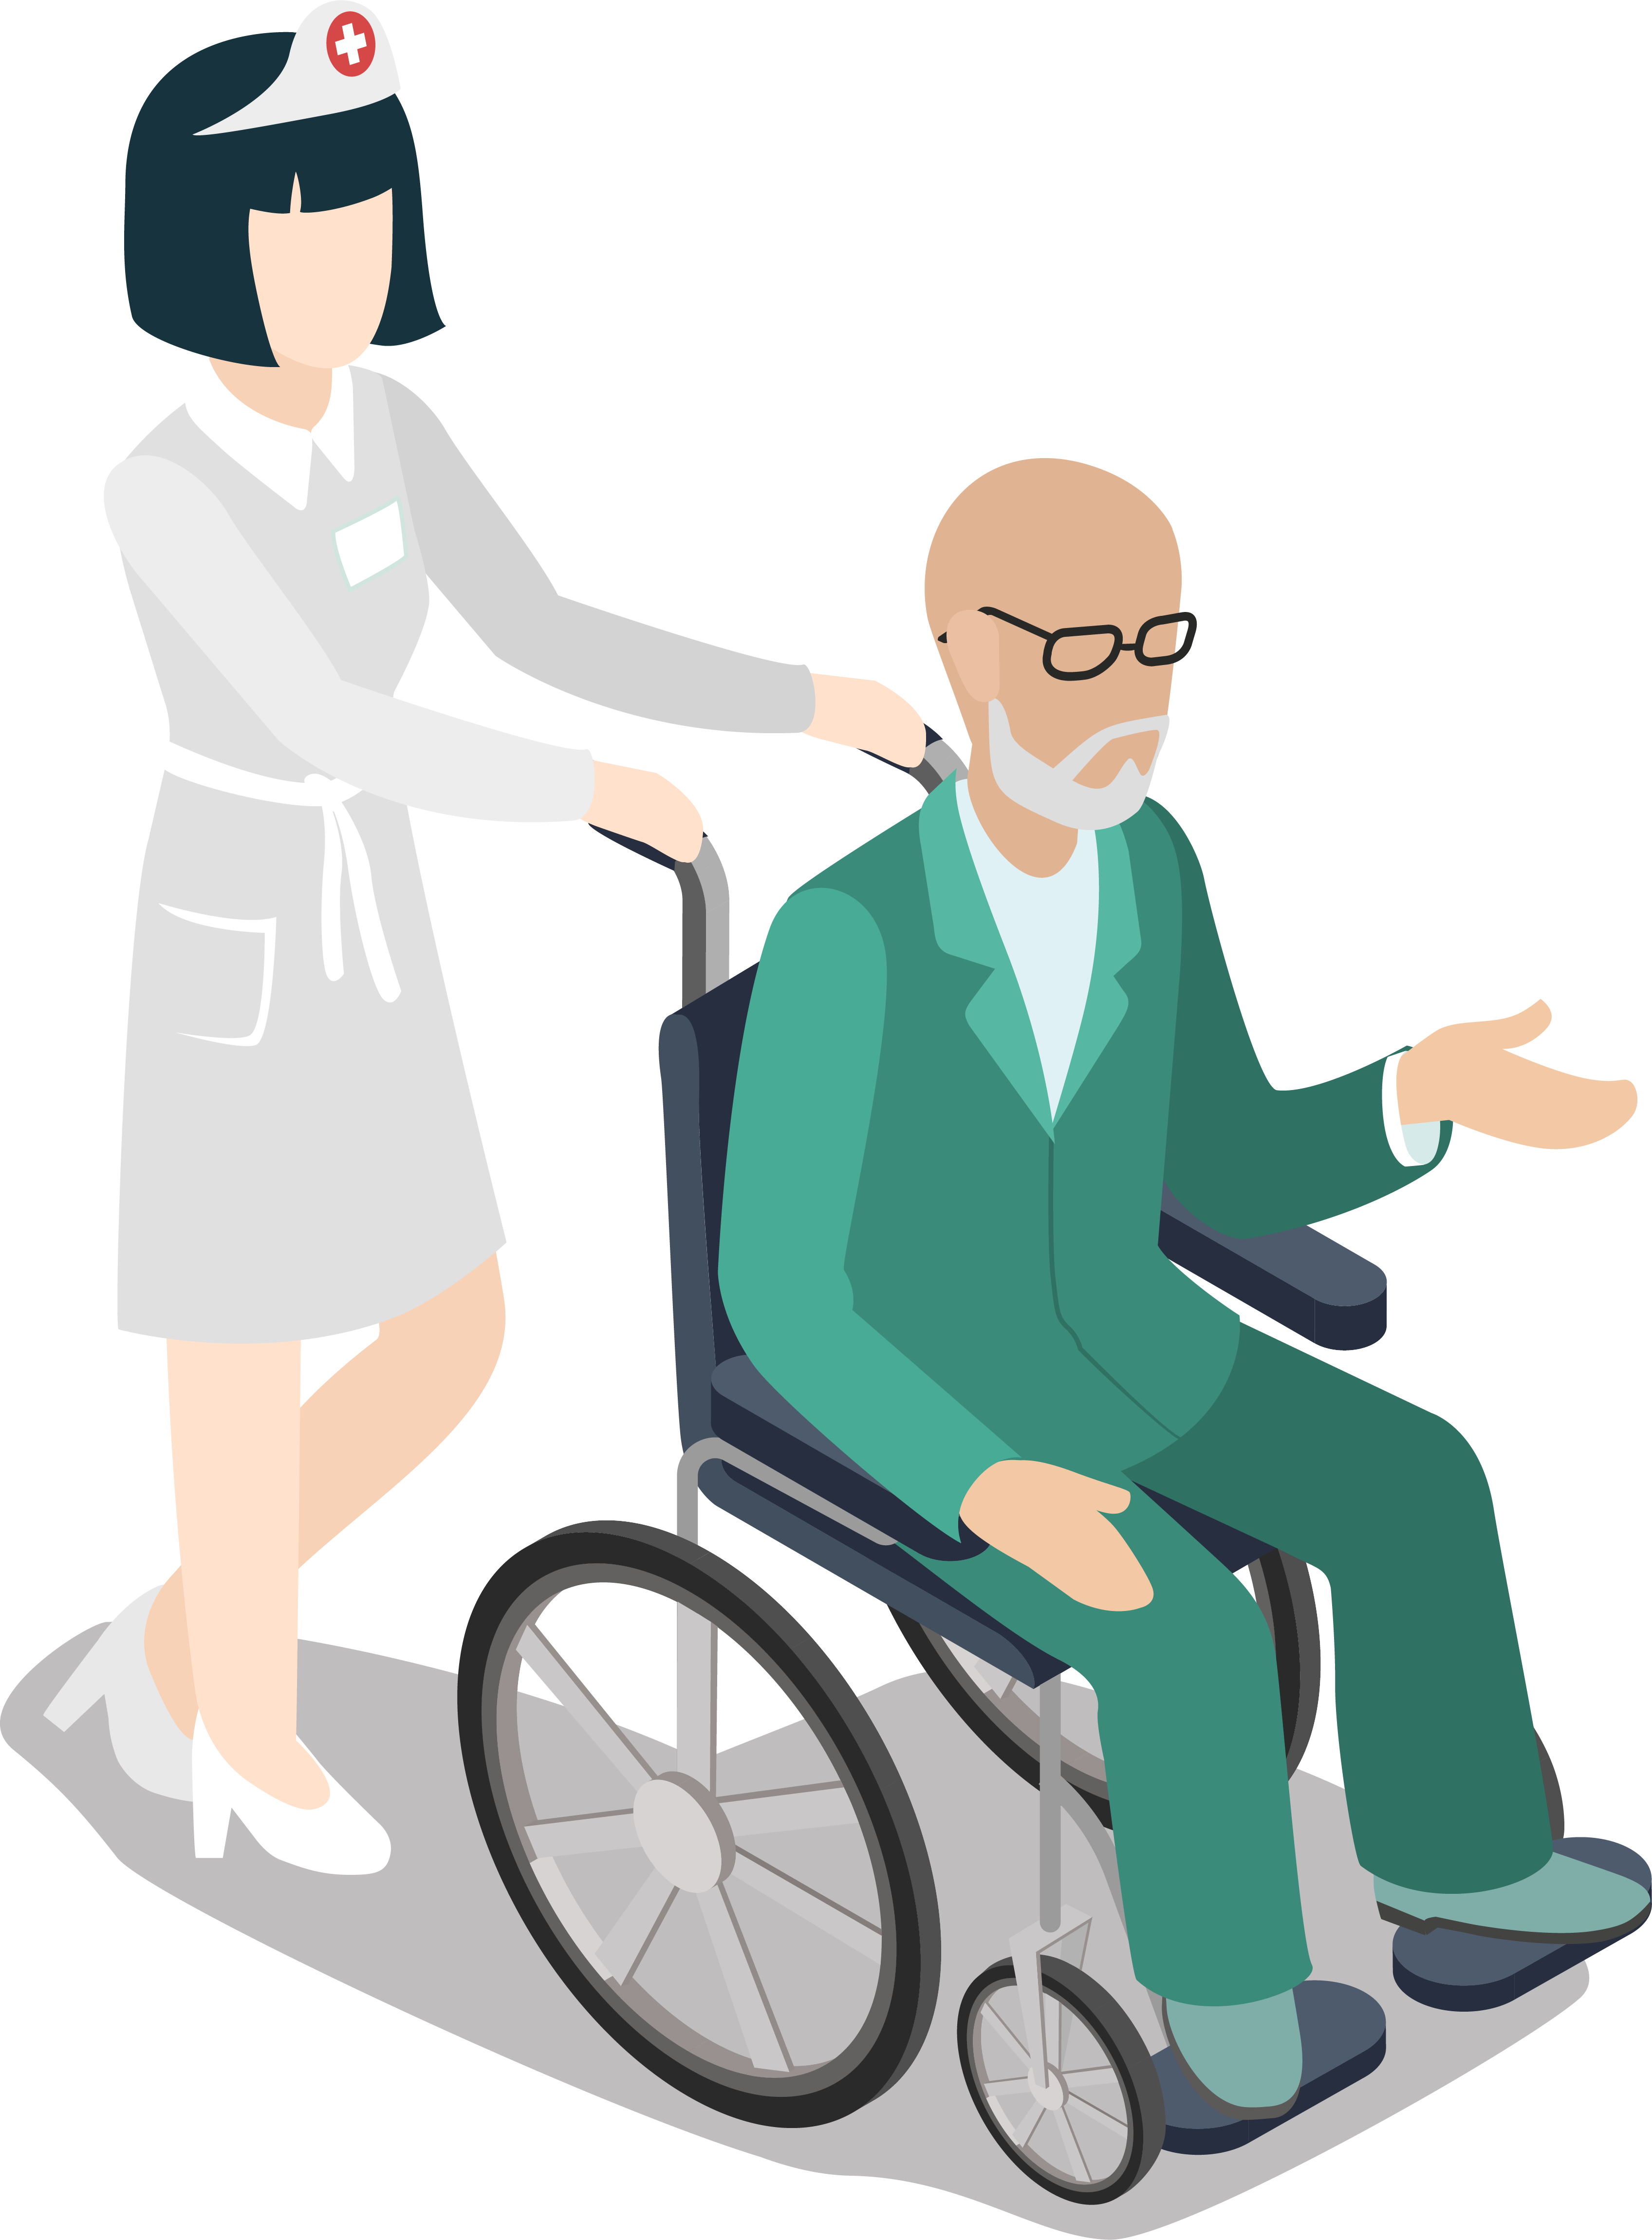 kisspng old age wheelchair clip art health care workers and the elderly 5a81816b52a851.9518754715184367153386